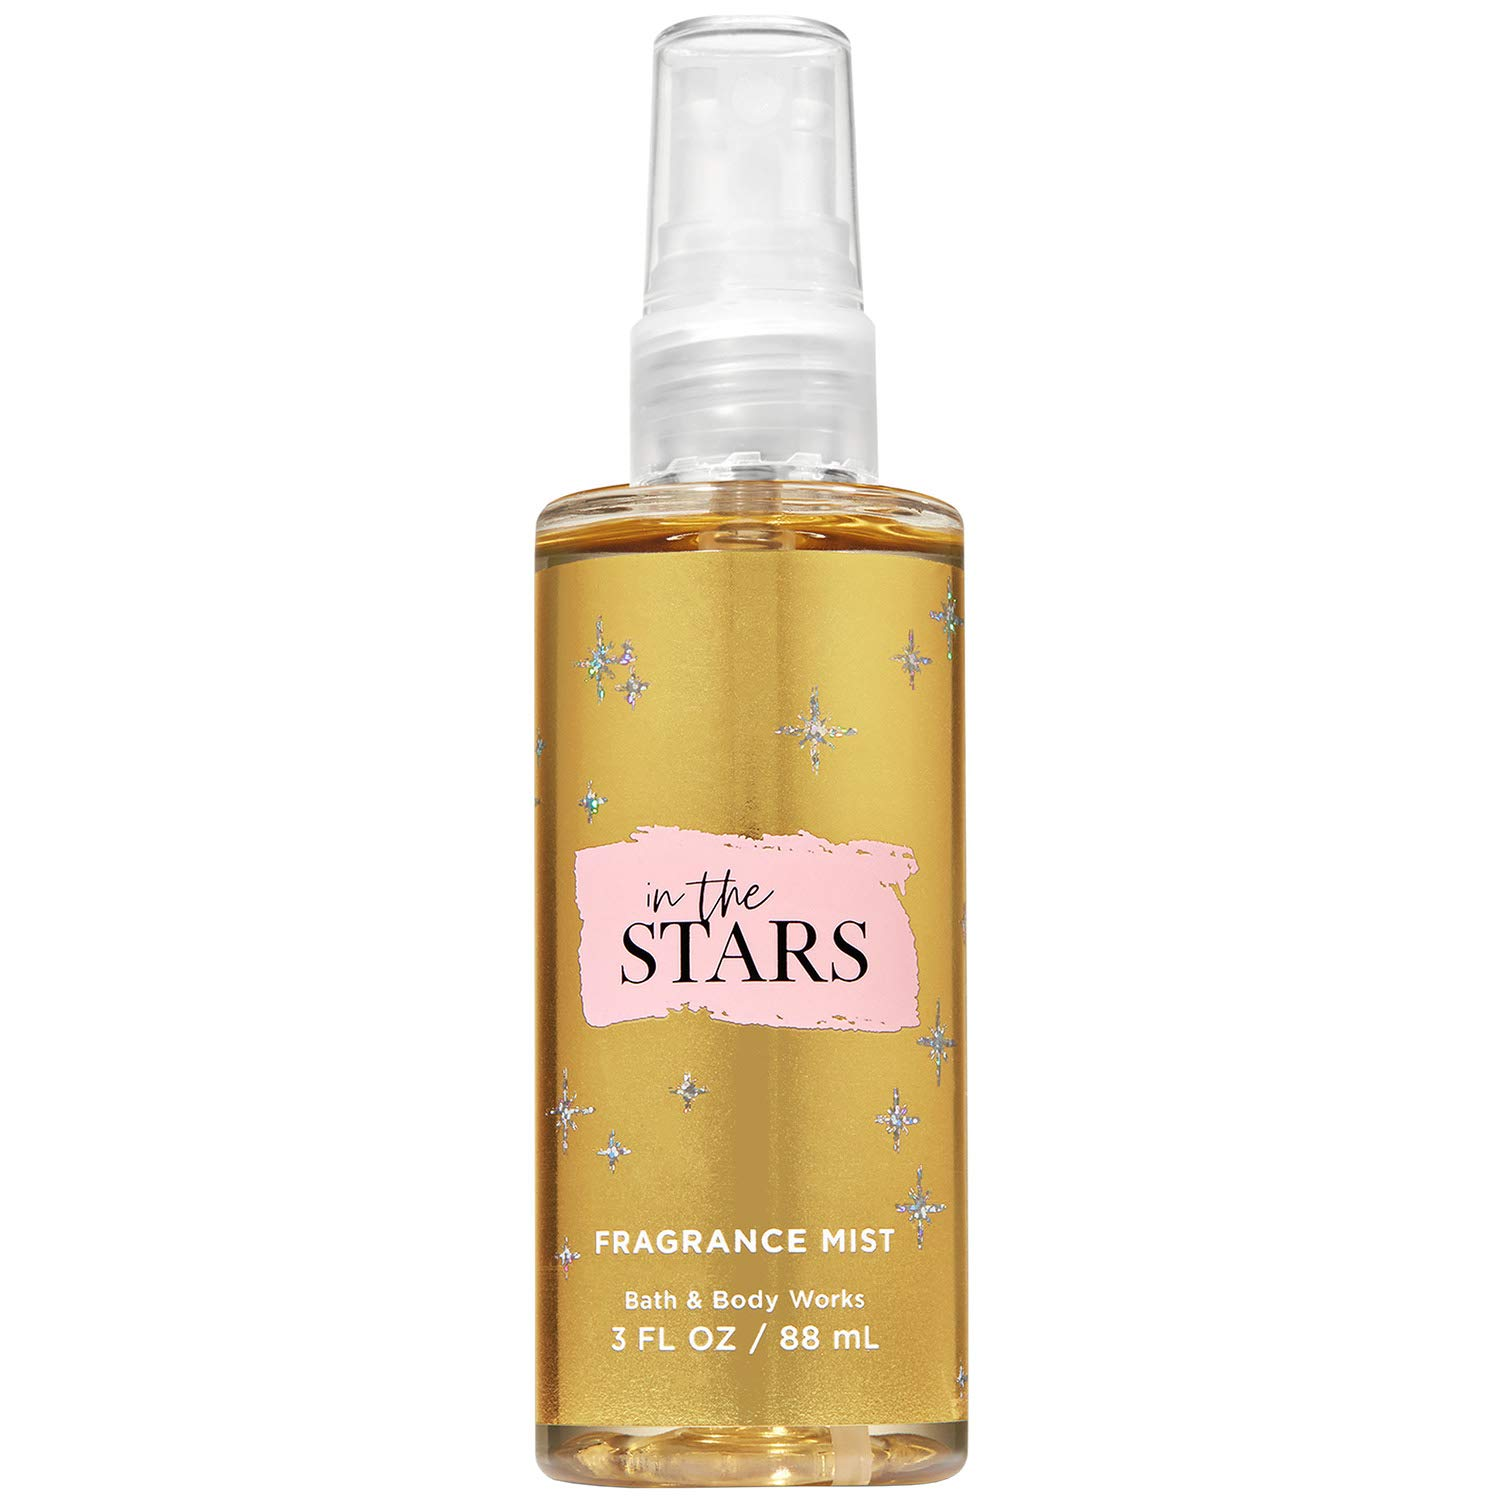 Bath and Body Works IN THE STARS Travel Size Fine Fragrance Mist 3 Fluid Ounce (2018 Limited Edition)